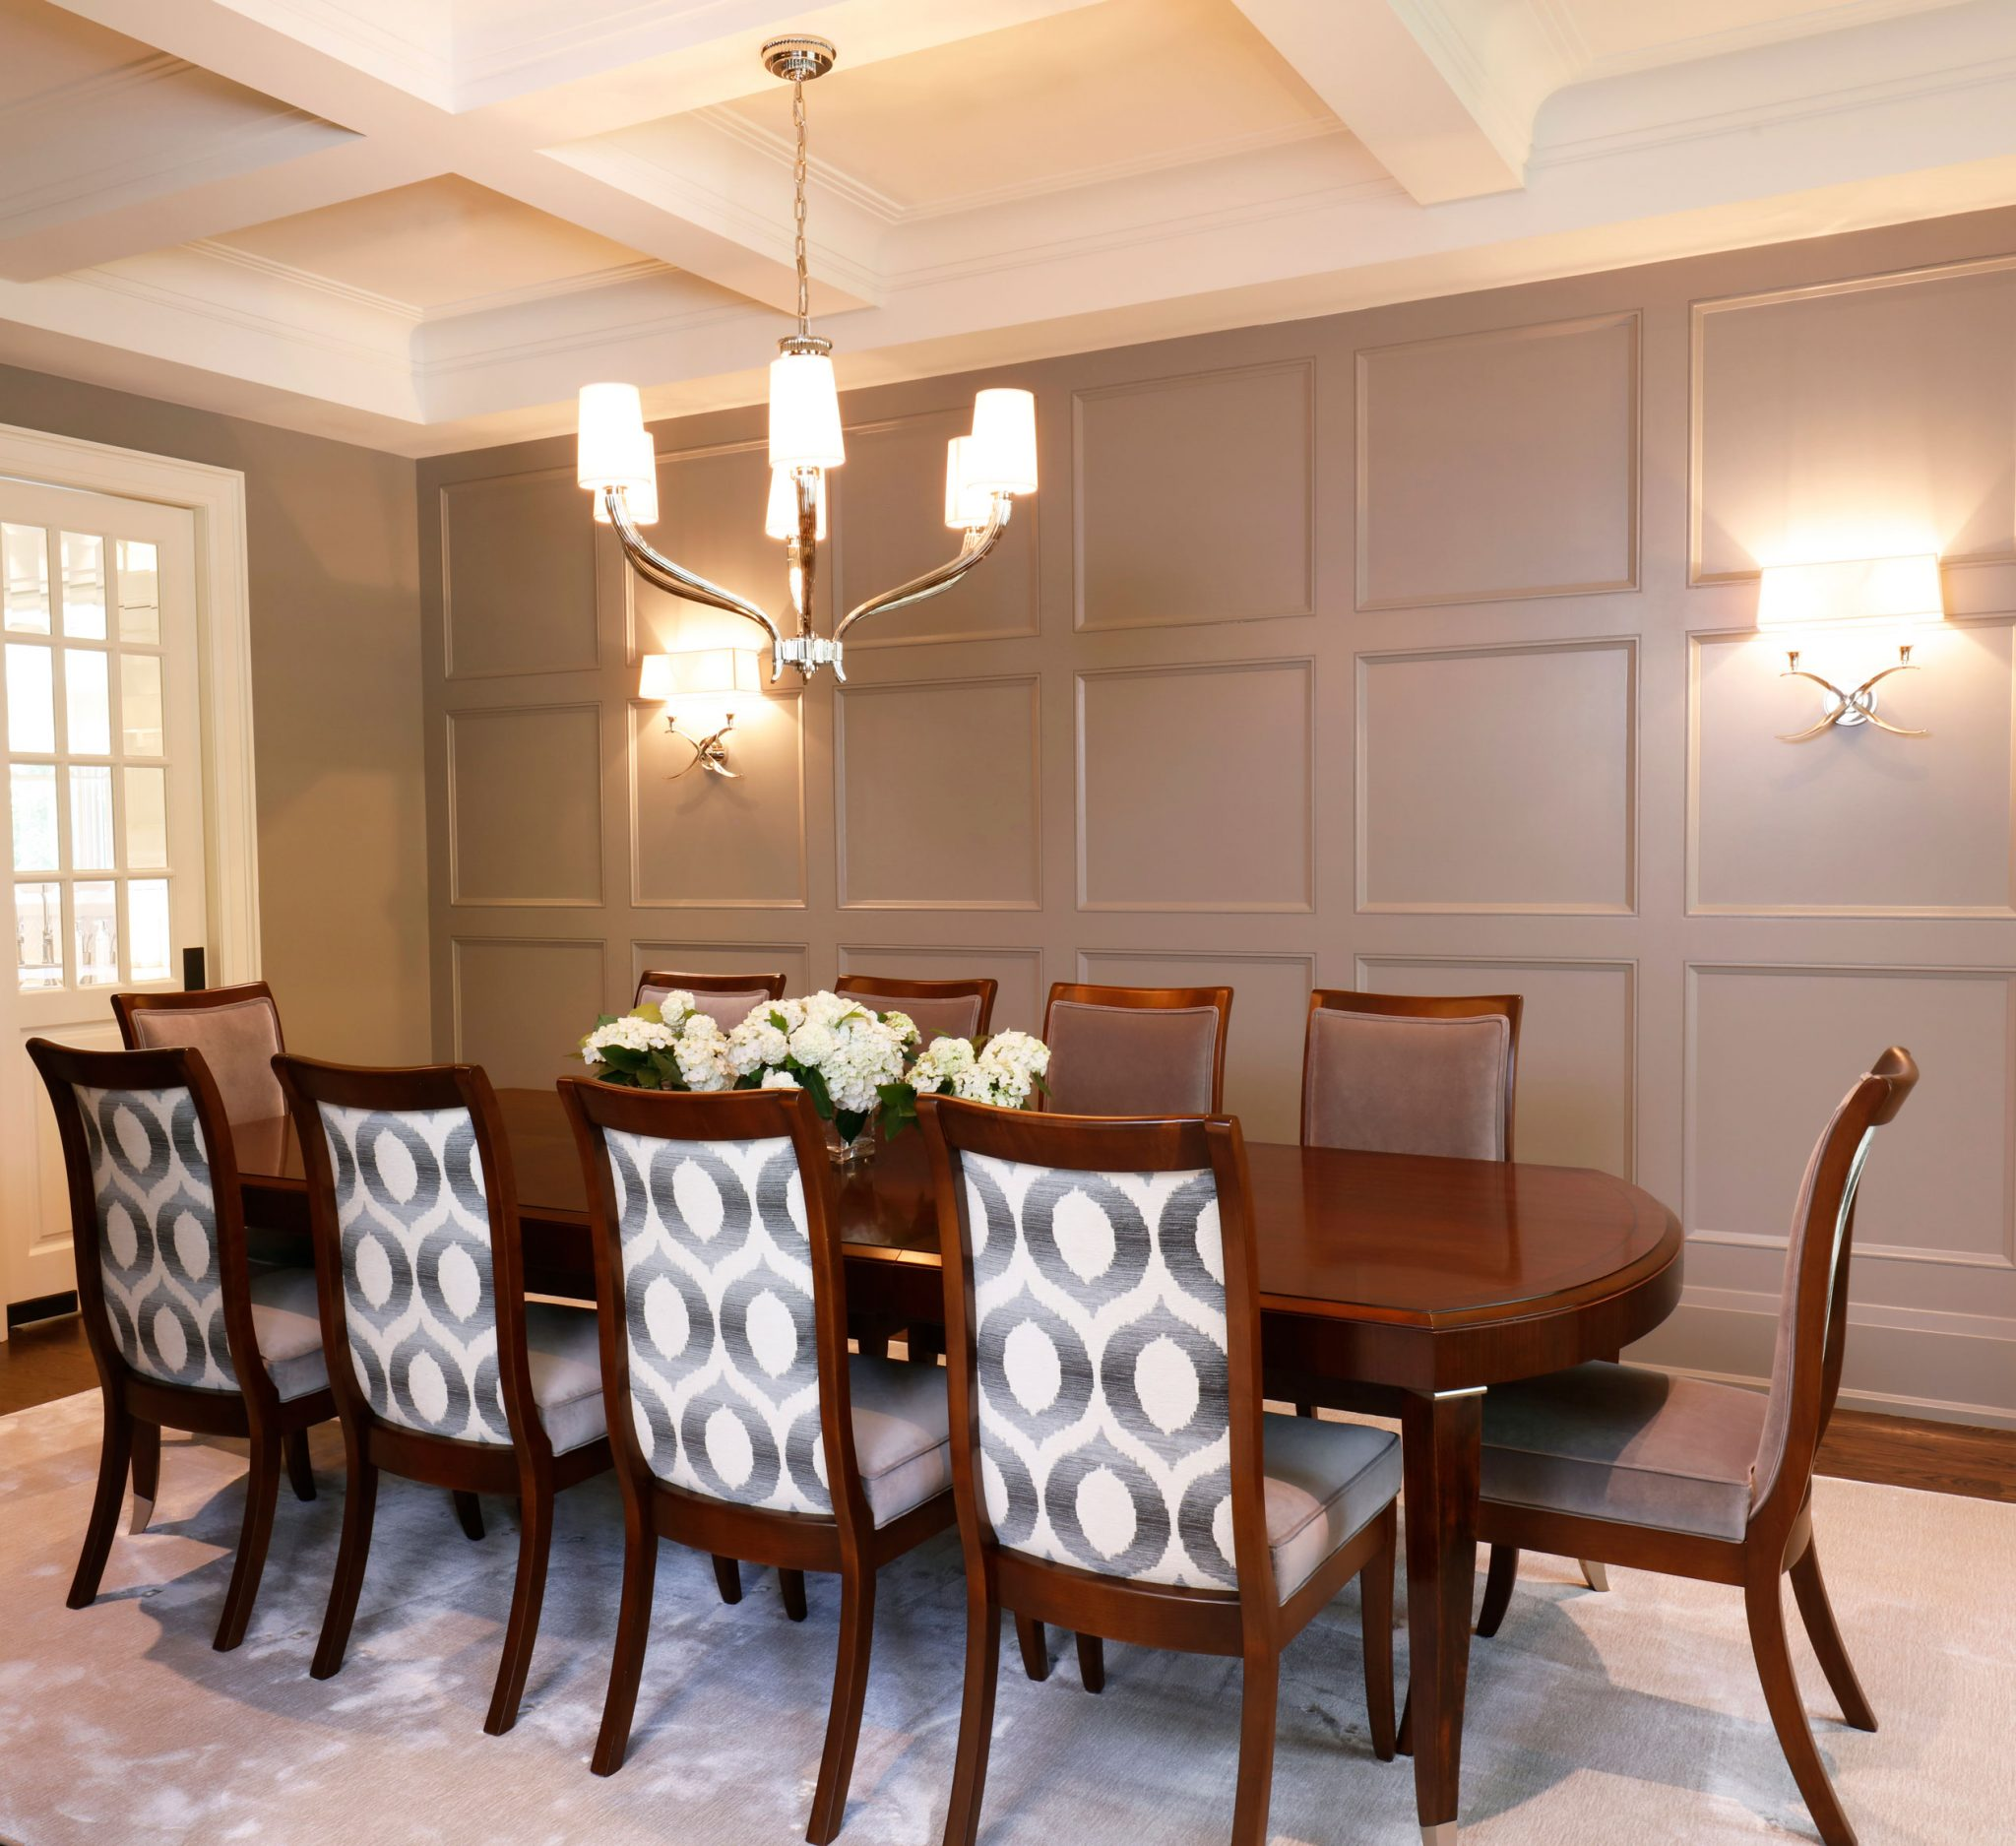 #4-FINAL-Dining-Room-51A0502